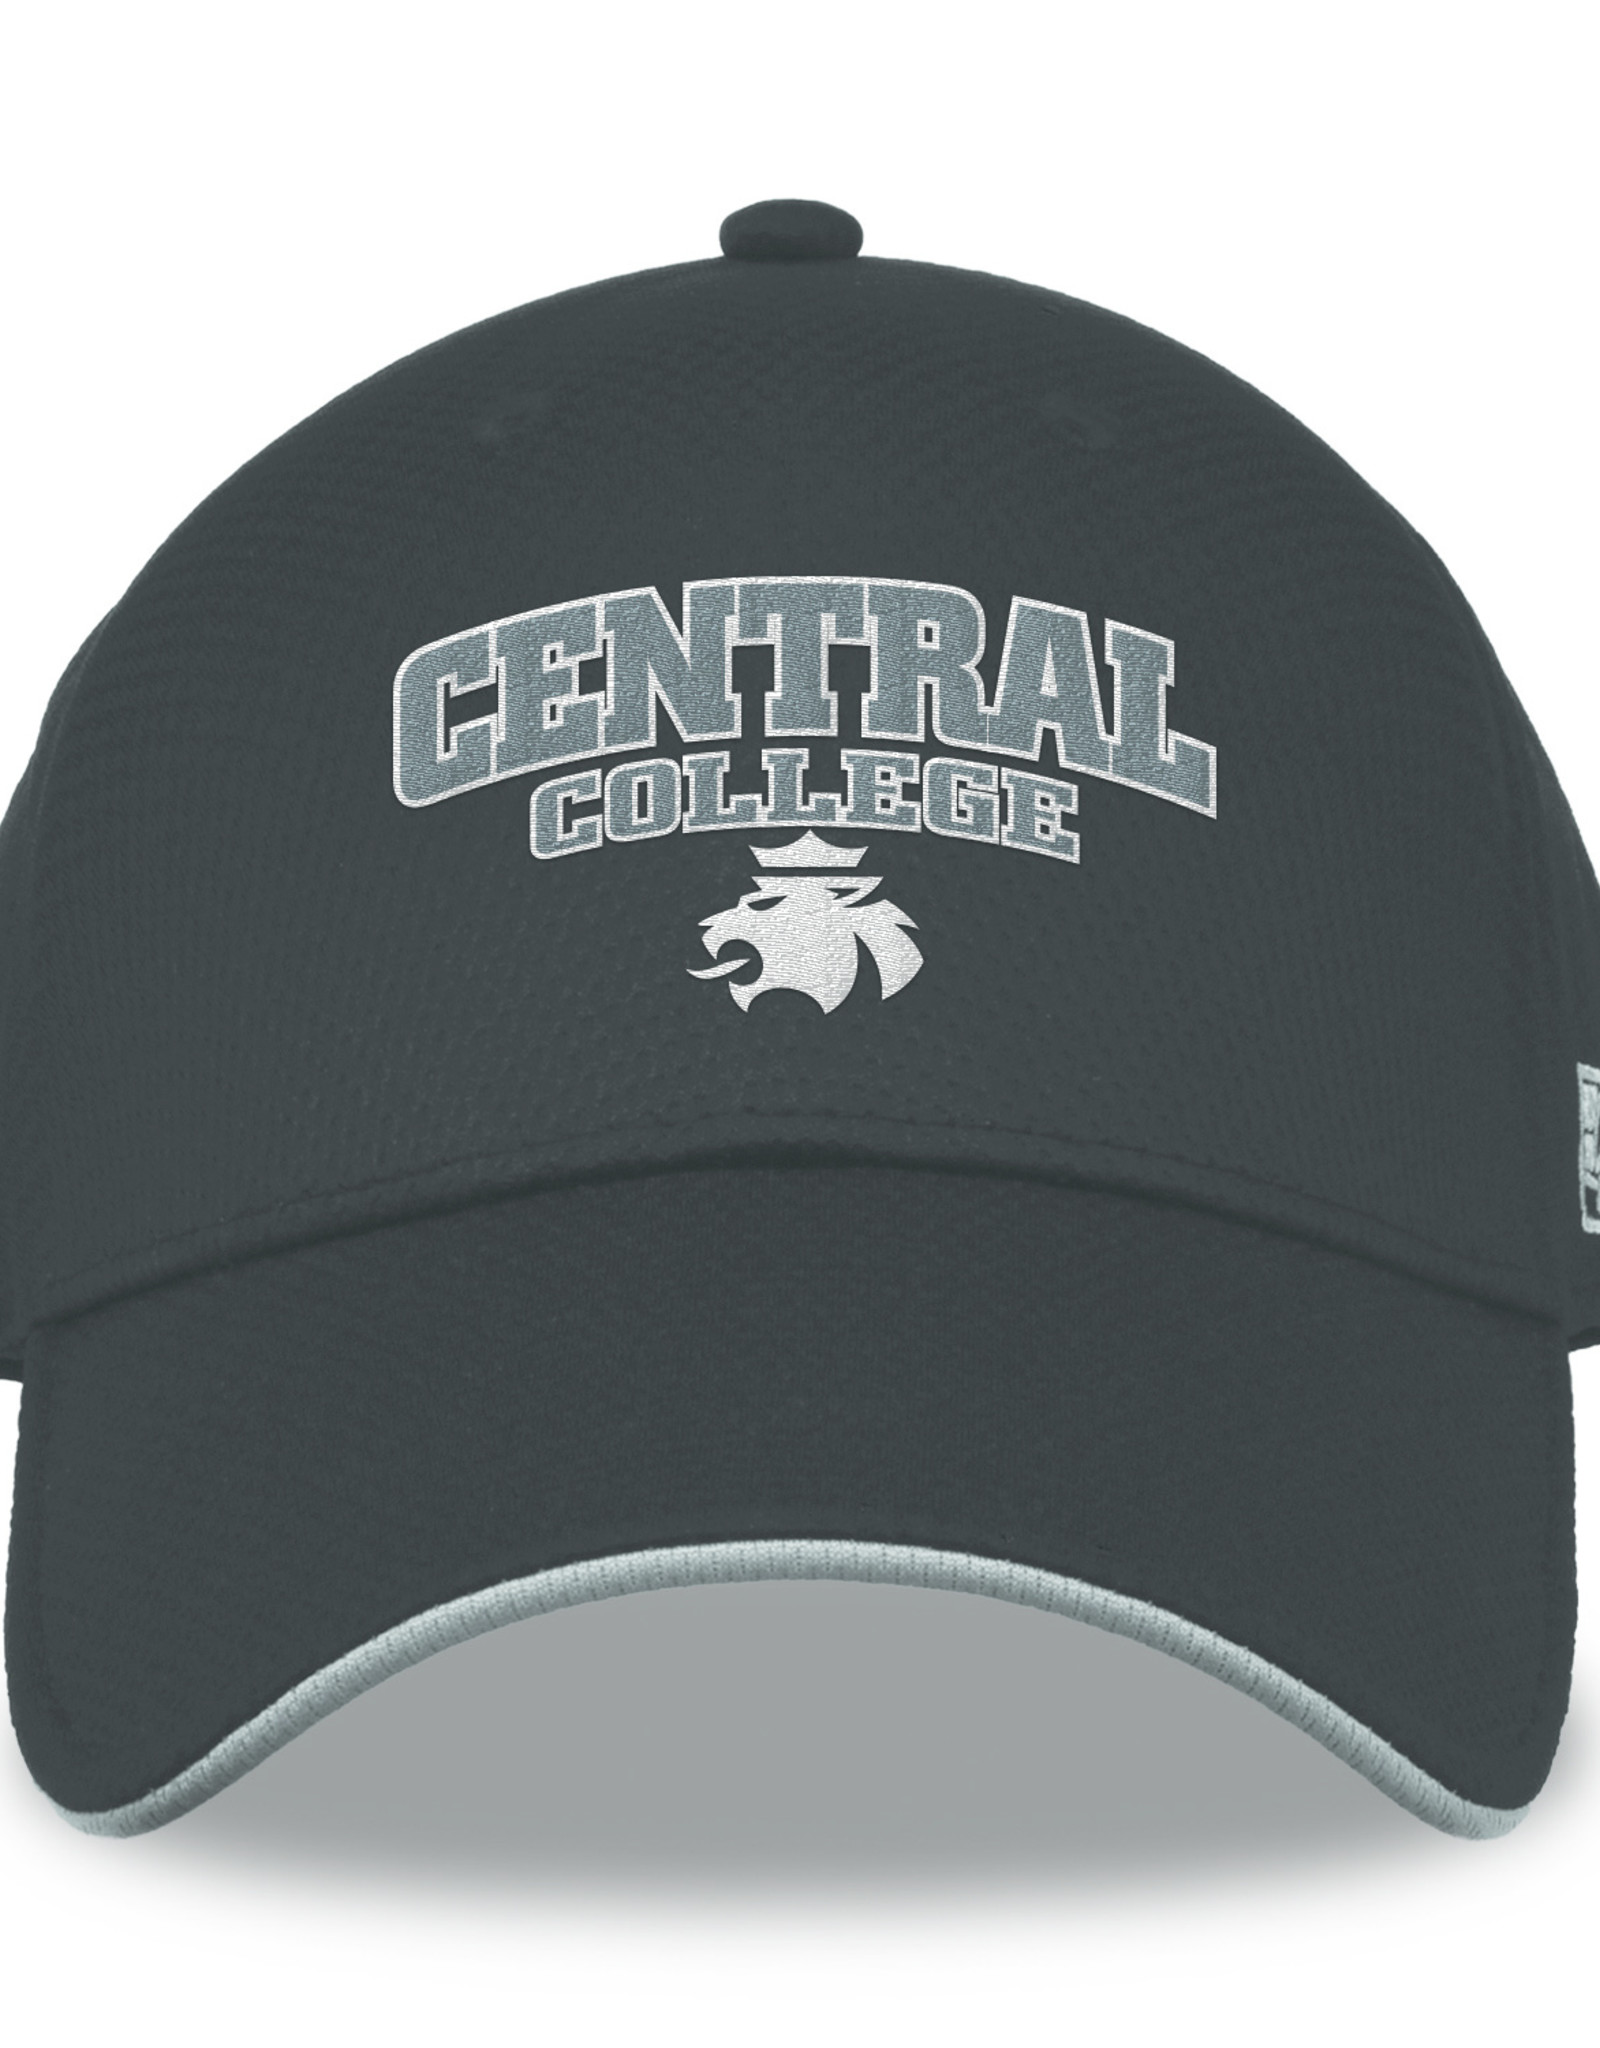 GAME Game One Touch hat CC lion black/gray/white